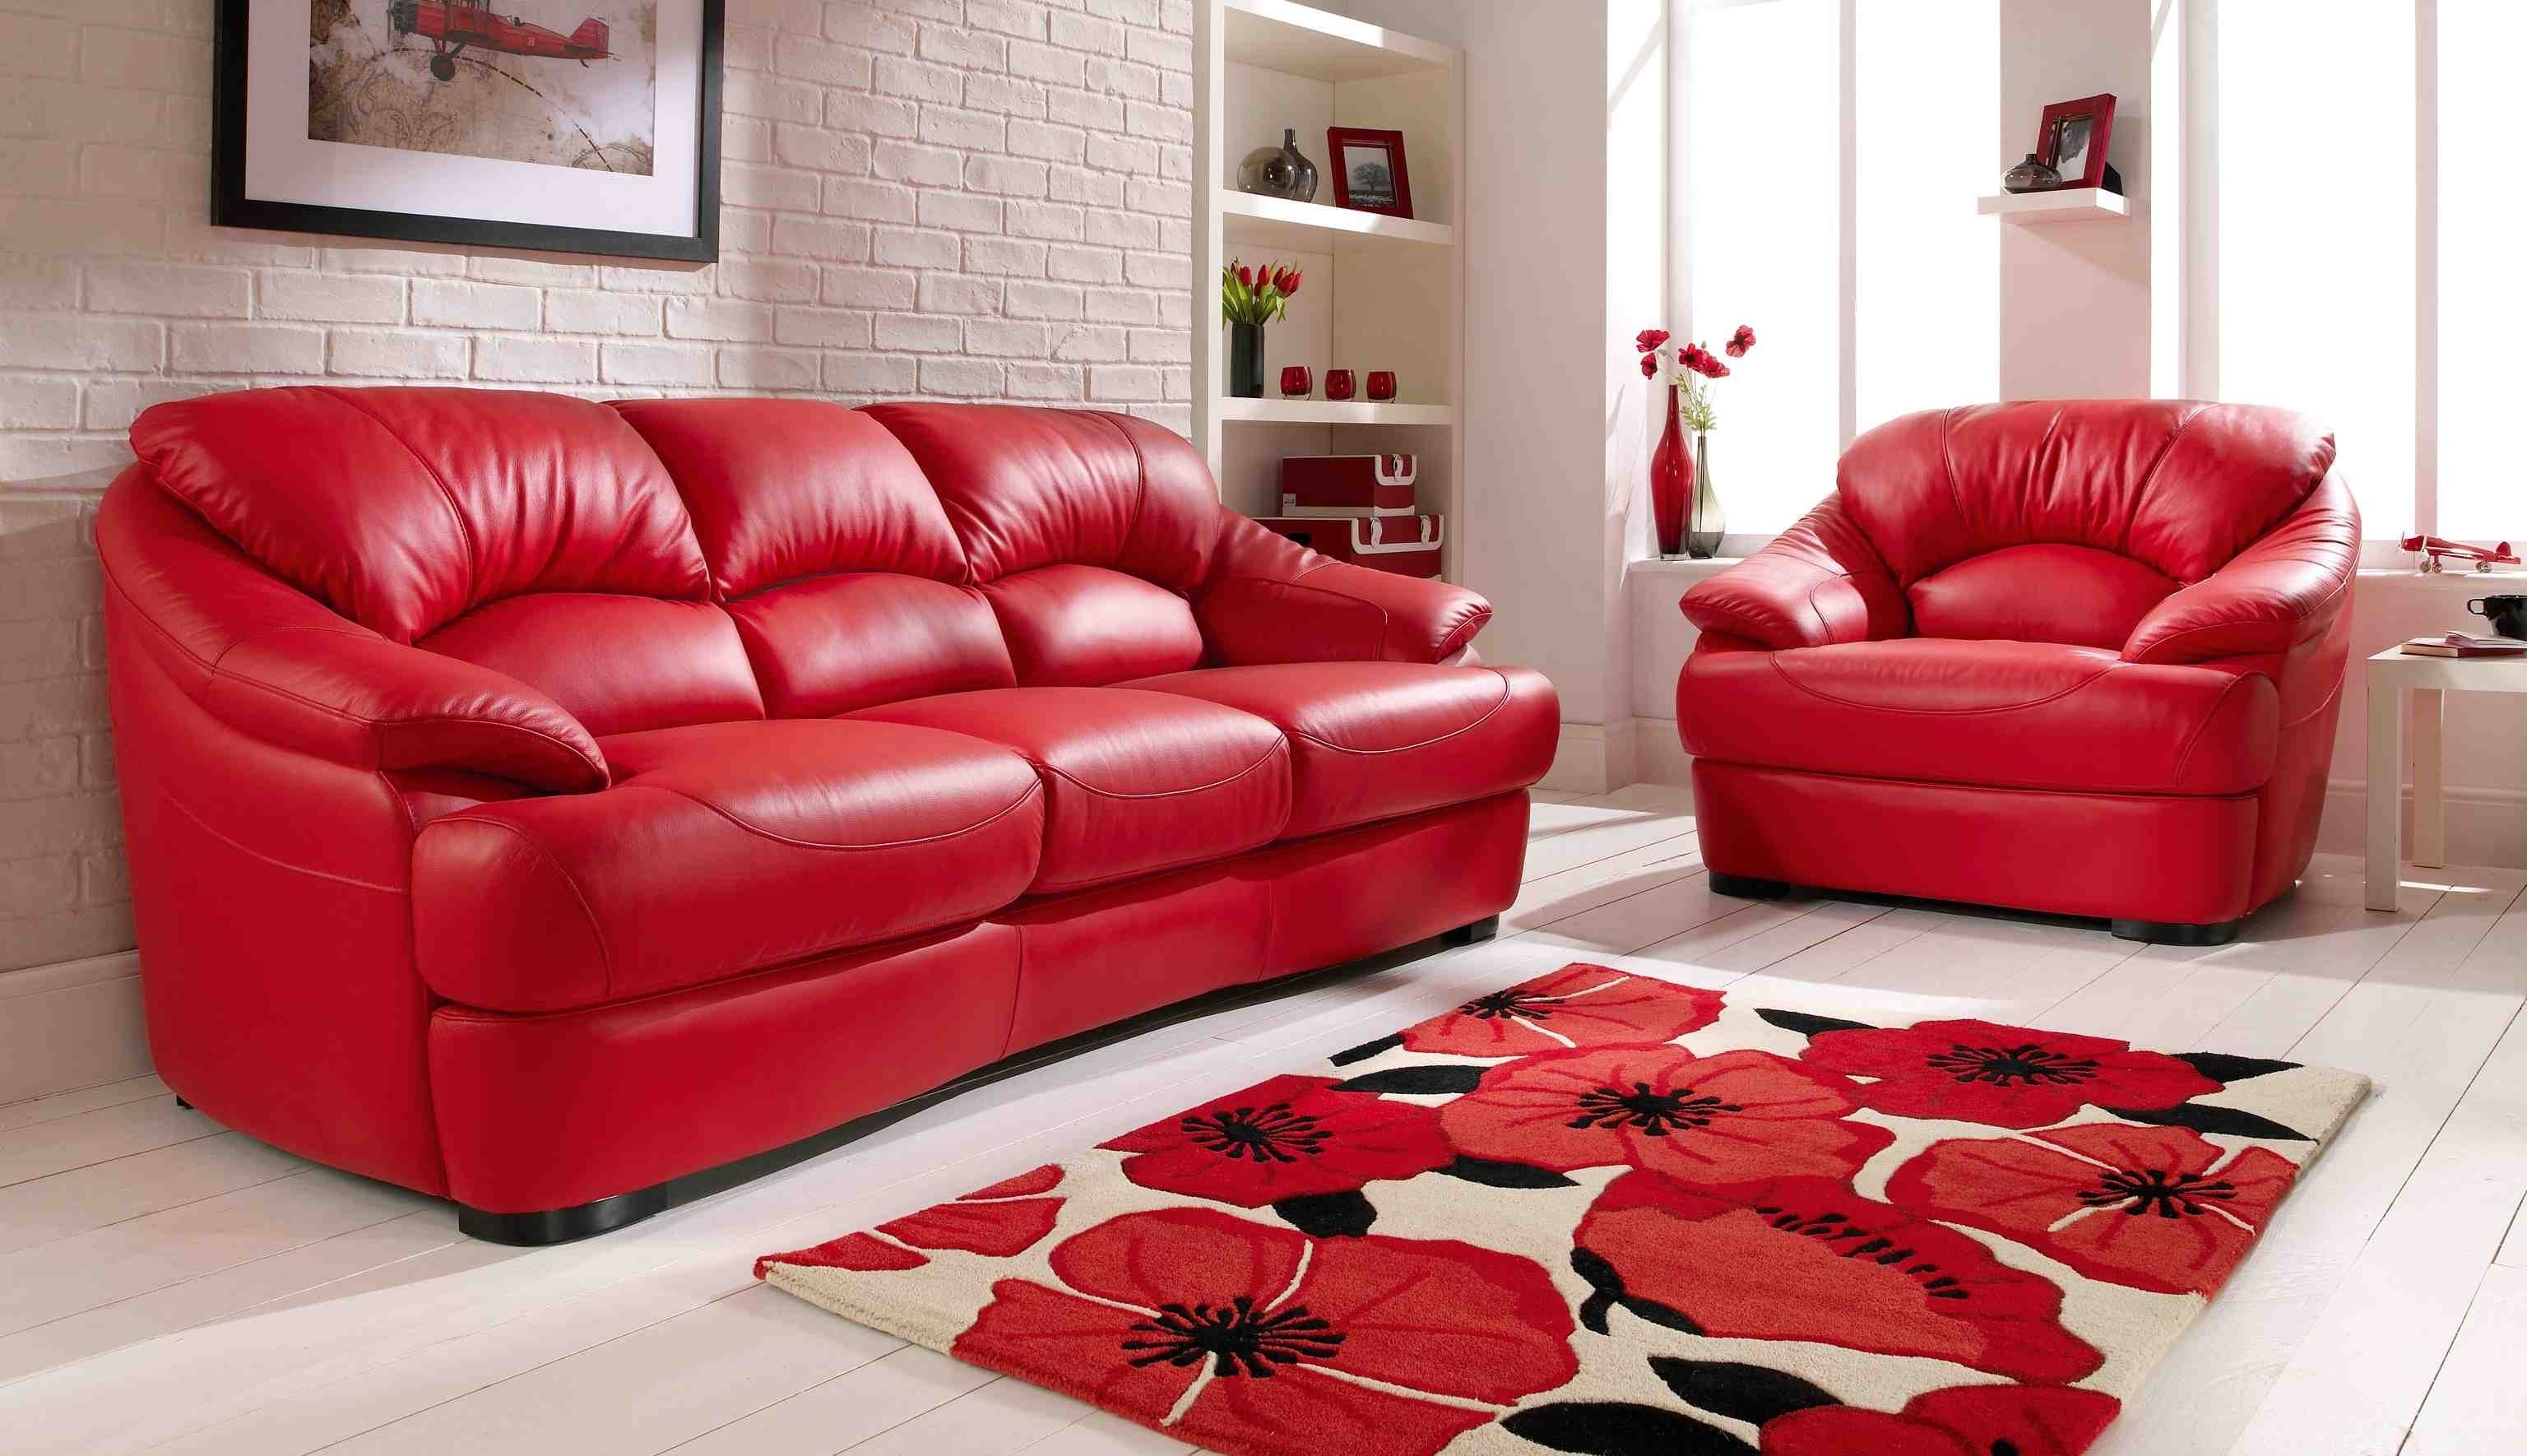 Most Recent Red Leather Sofa Living Room Ideas Home Design Ideas Pertaining To Pertaining To Red Leather Couches (View 4 of 20)